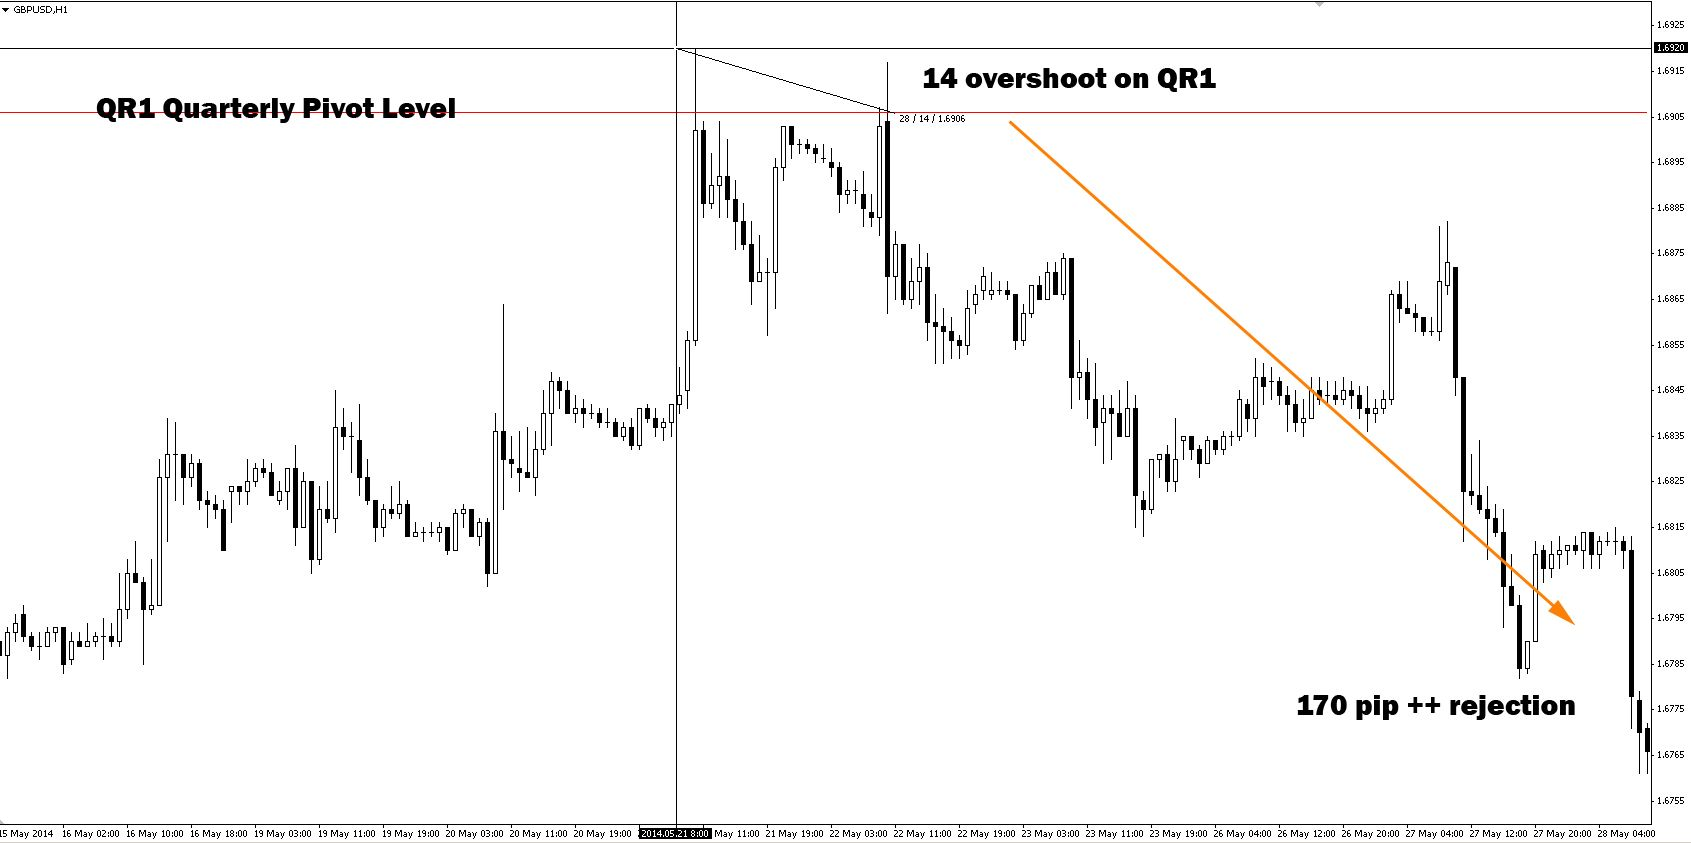 GBPUSD - 21/05/14 - 28/05/14 - 170 pip + rejection from QR1